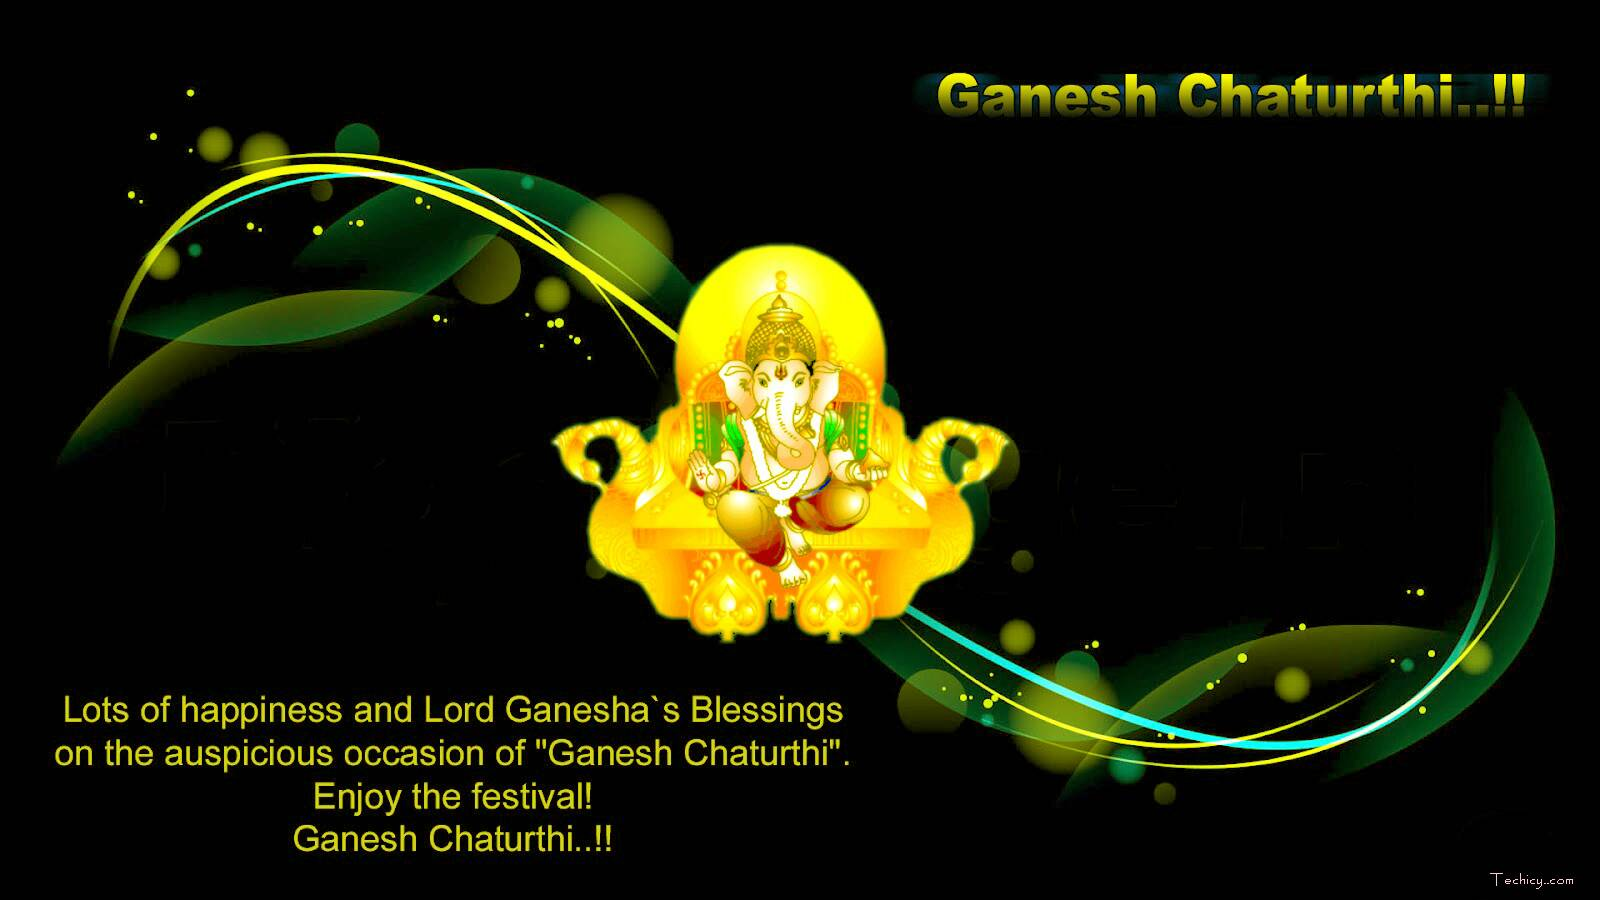 Happy ganesh chaturthi 2017 facebook whatsapp messages status hd source techicy m4hsunfo